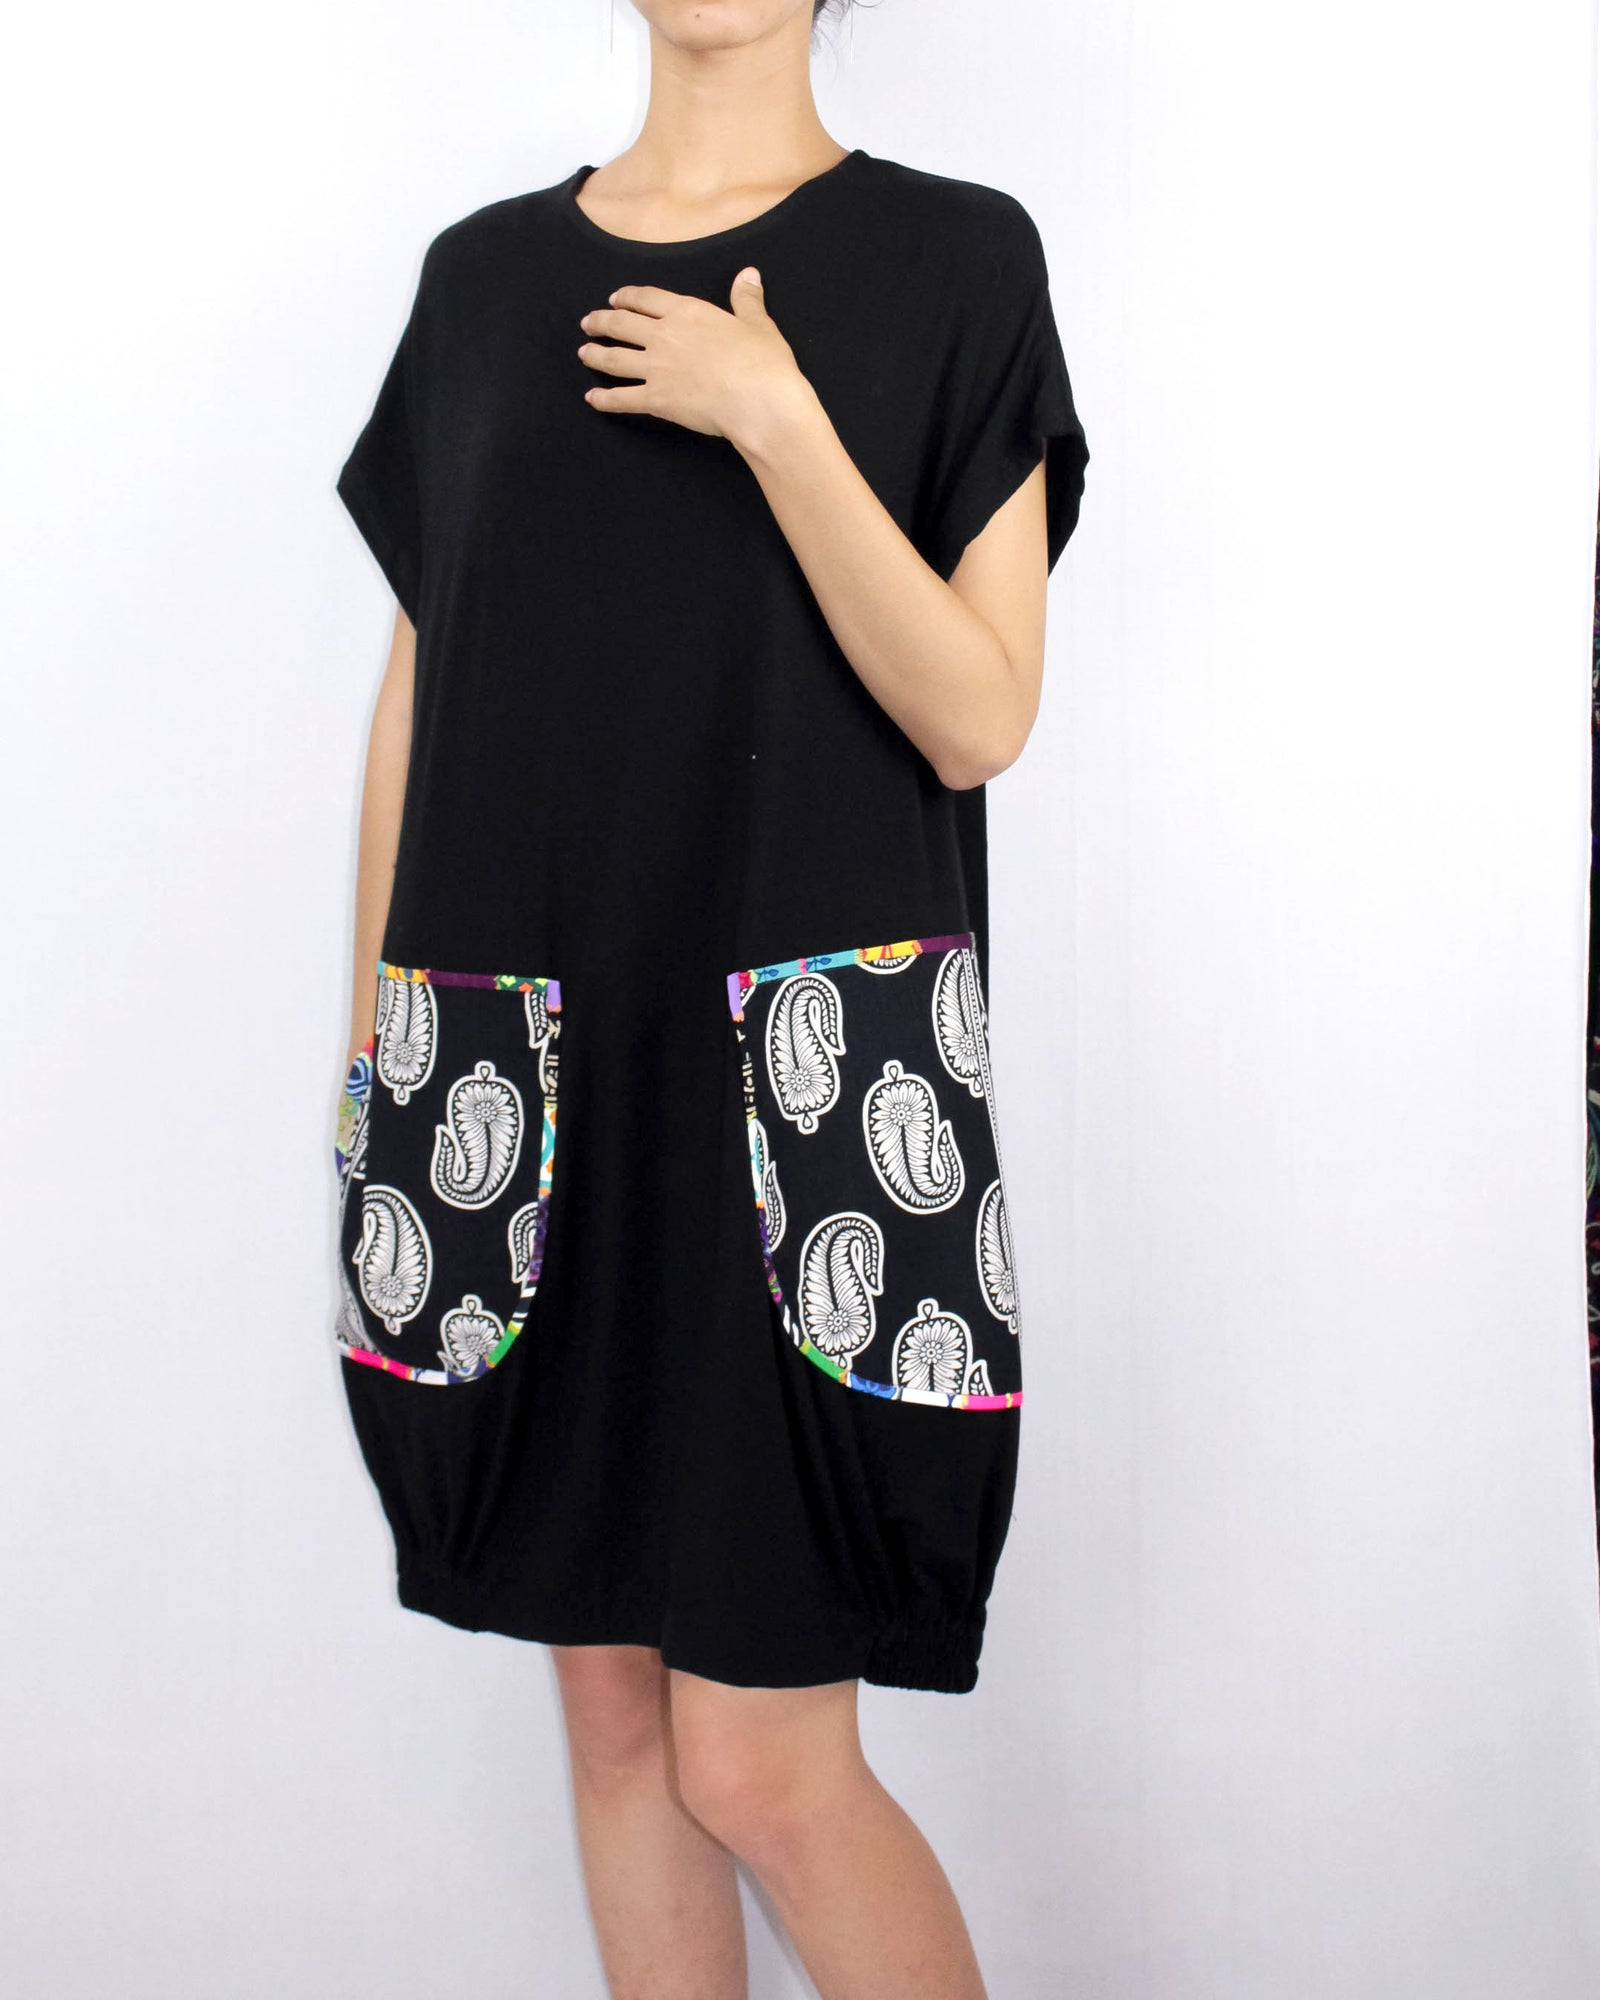 summer cotton dress with handcrafted patchwork pocket in black tshirt cotton knit fabric